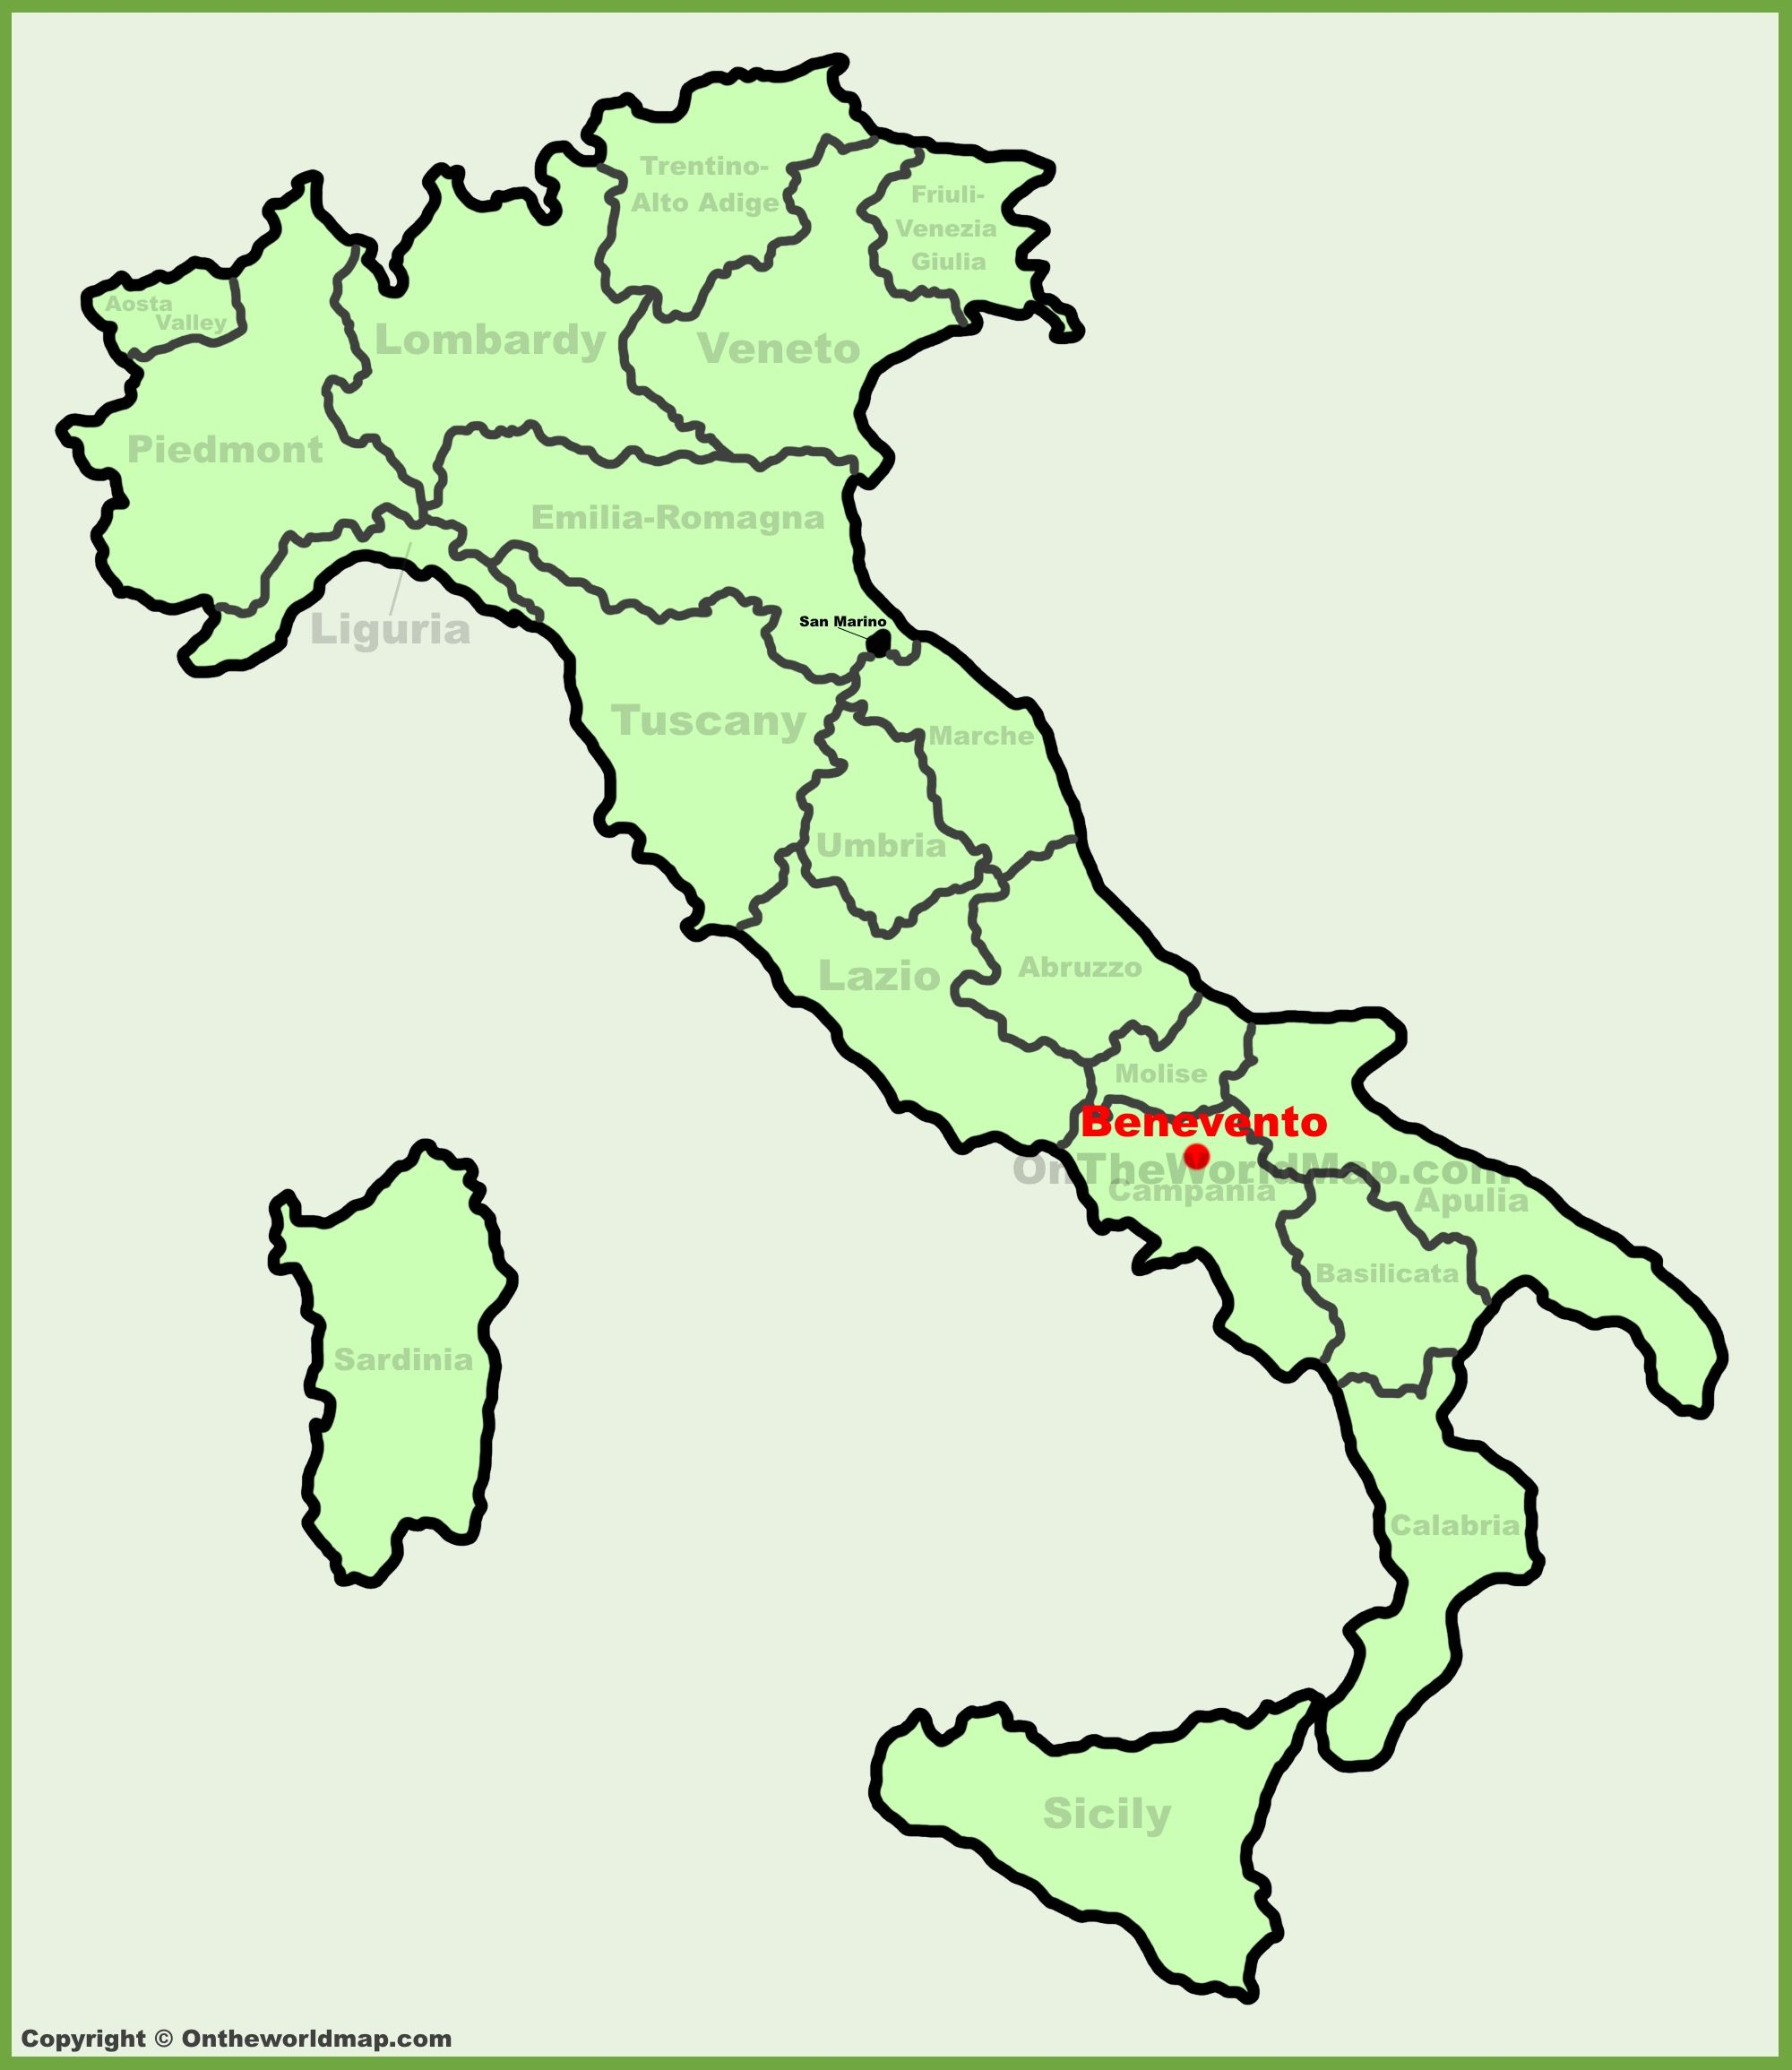 Benevento location on the Italy map Maps Pinterest Italy and City